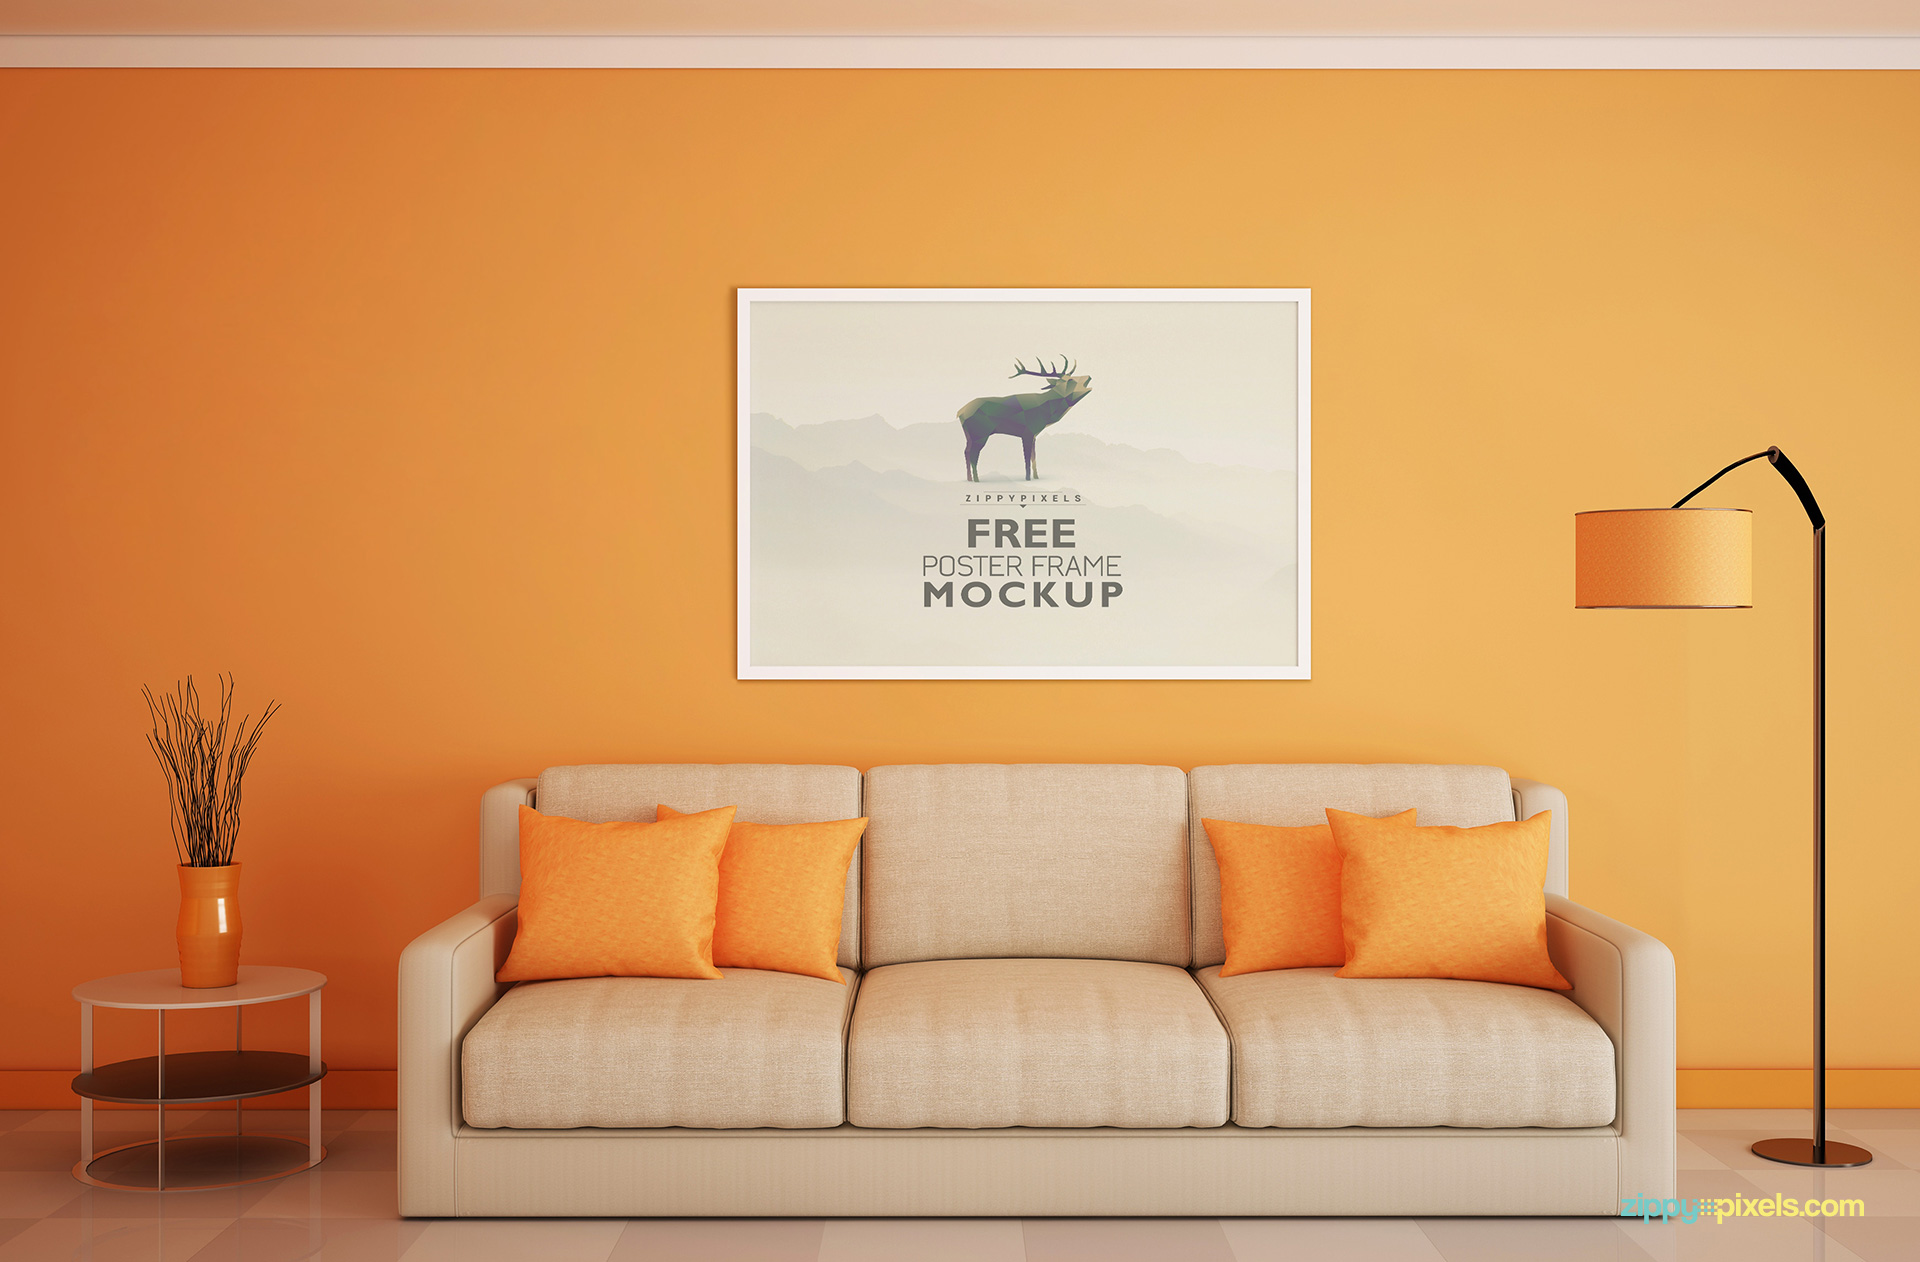 Download Free Frame Mockup for Poster Display | ZippyPixels